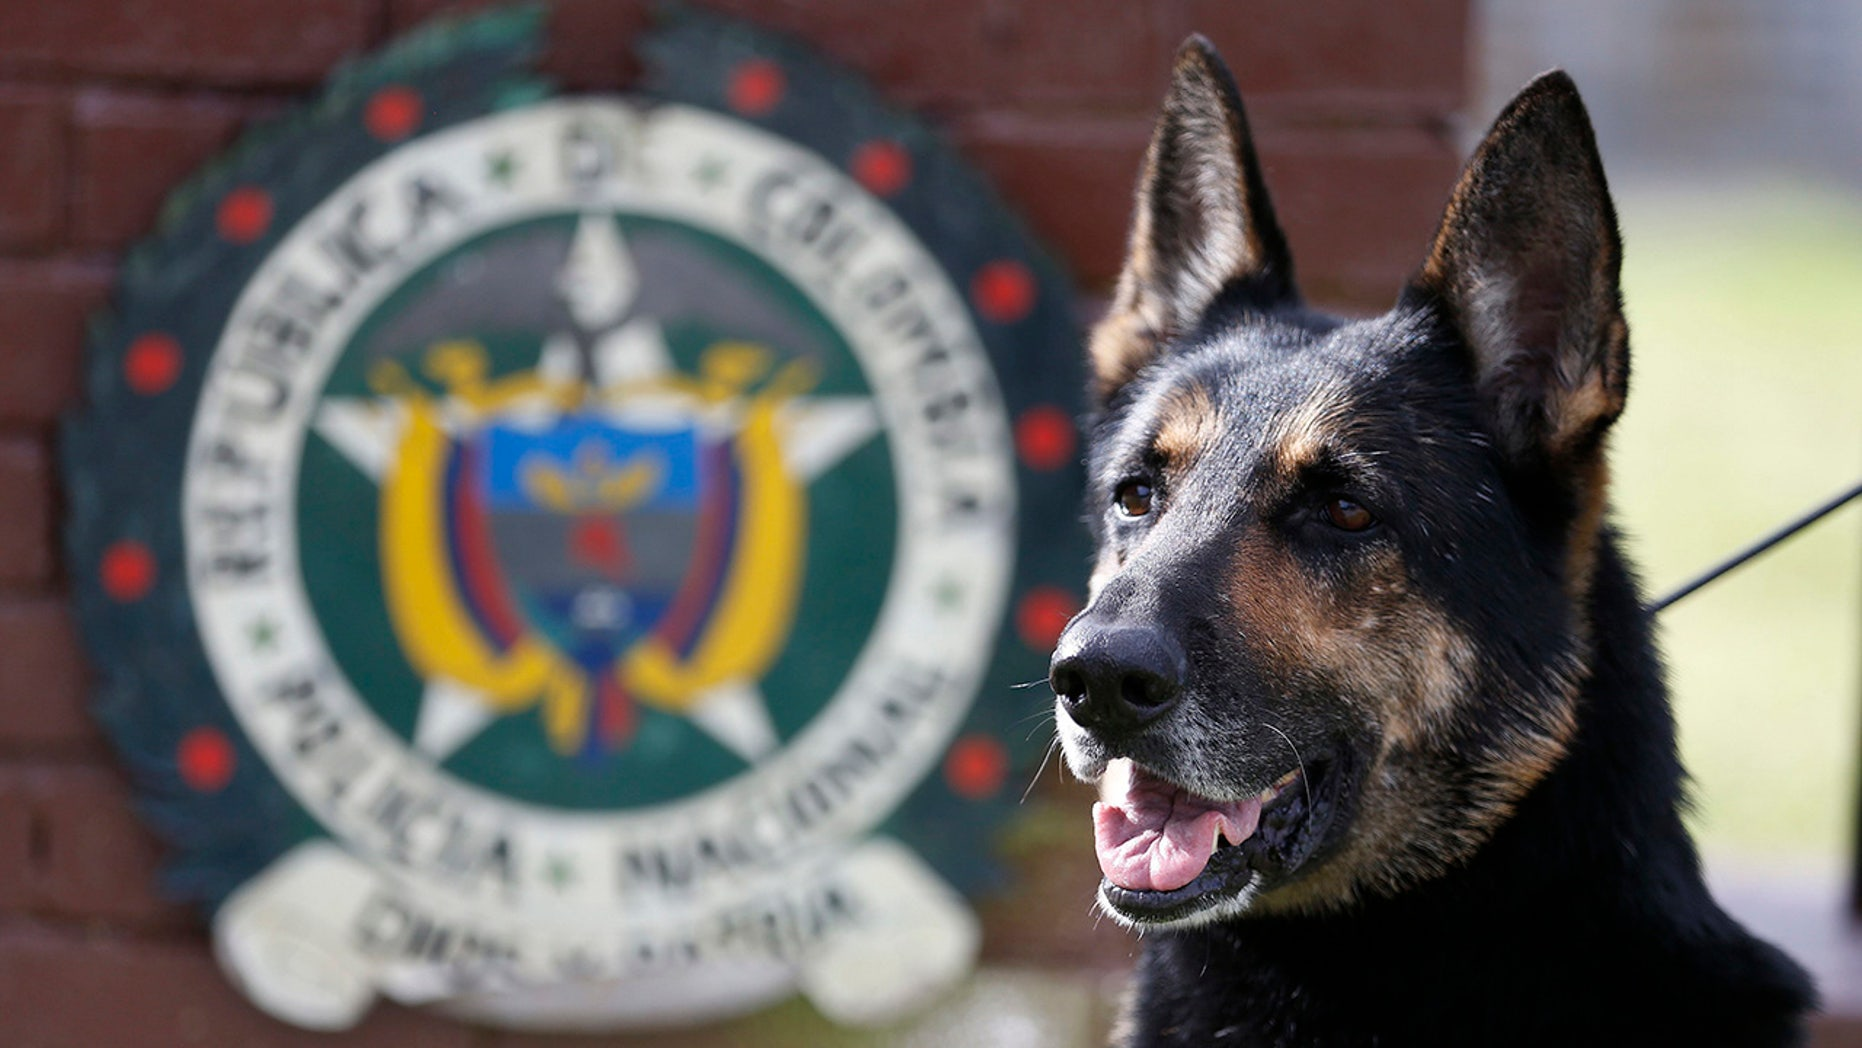 Drug dog Sombra has helped detect more than 2,000 kilos of cocaine hidden in suitcases, boats and large shipments of fruit.